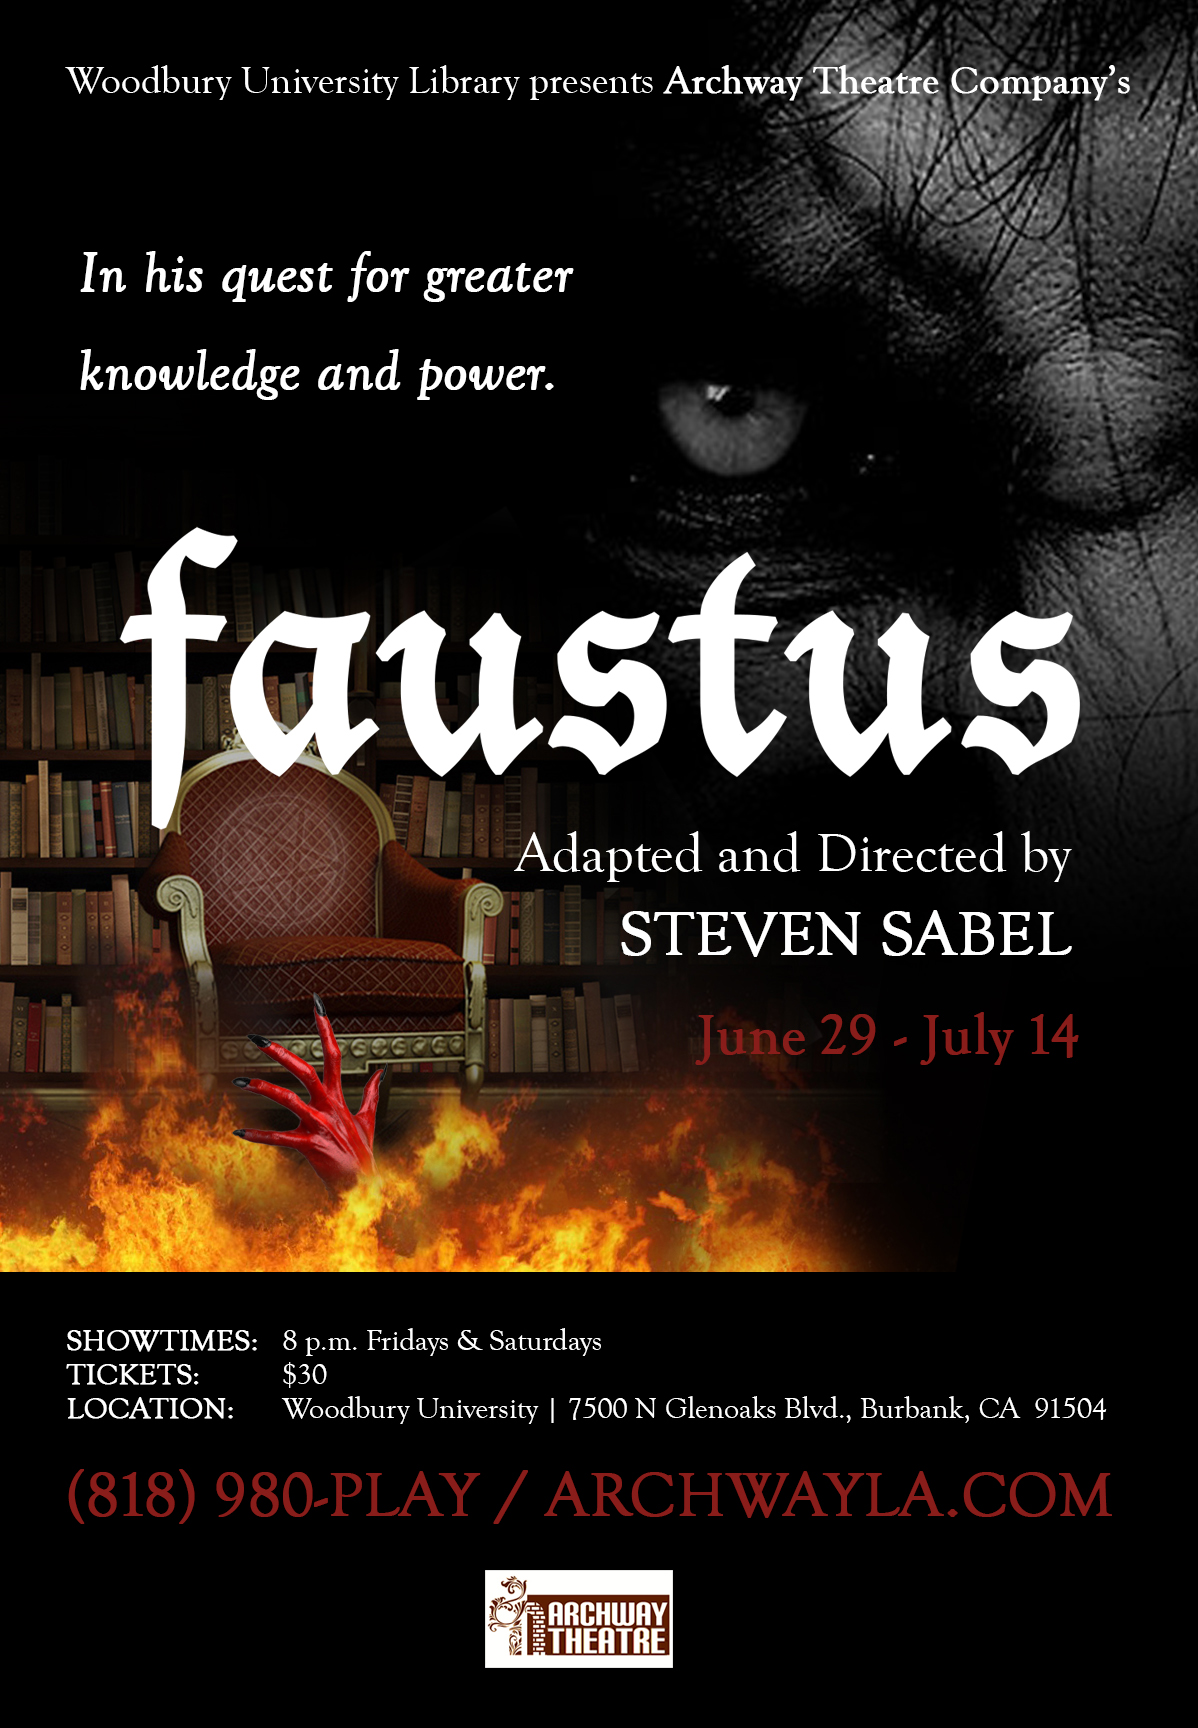 Faustus June 29 - July 14